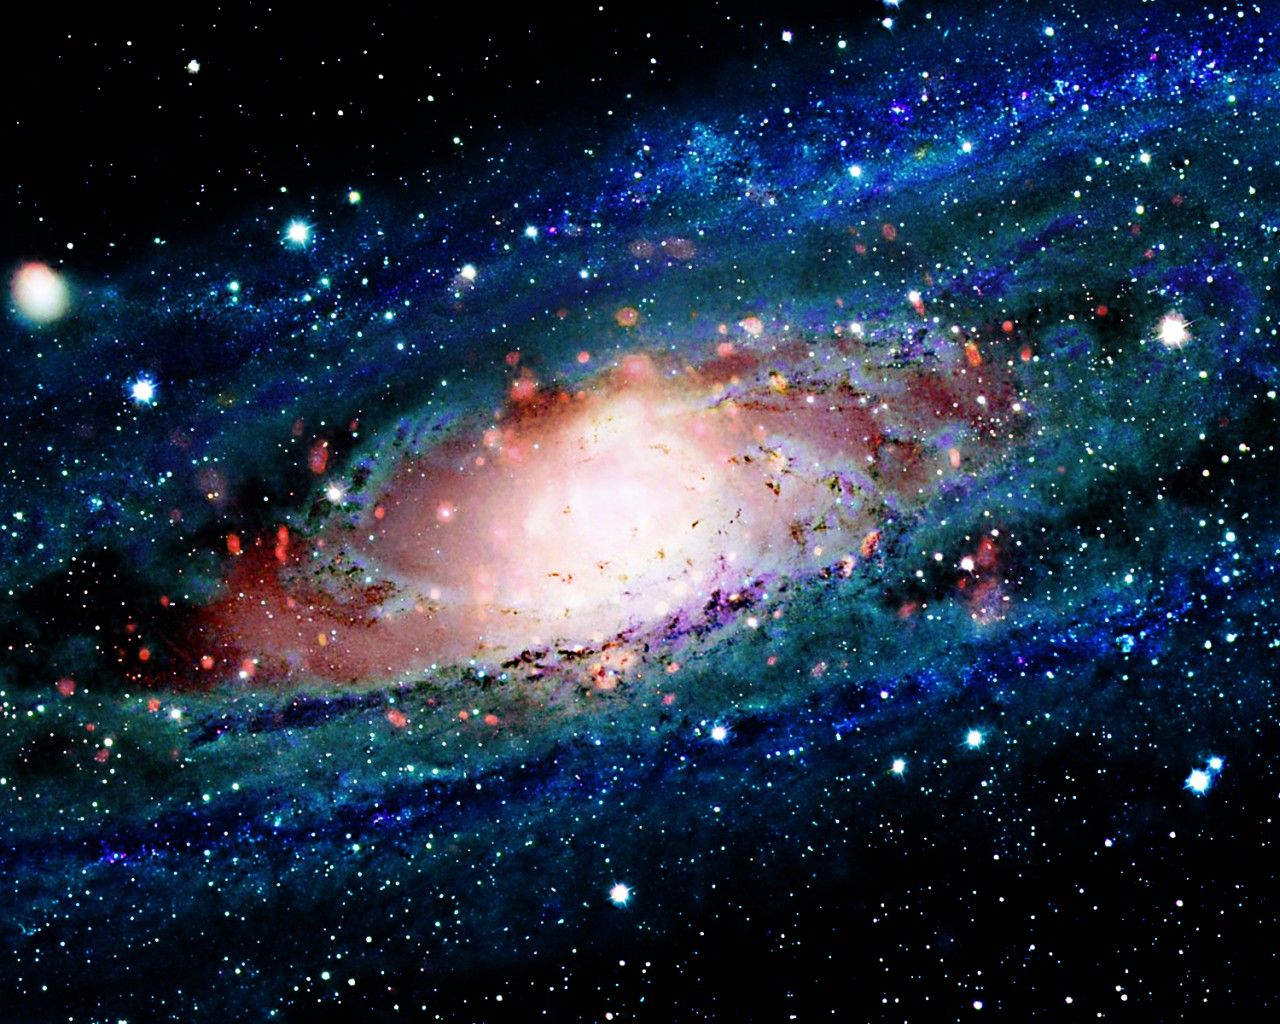 Outer Space Galaxy Wallpaper For Desktop Background 13 Hd Wallpapers